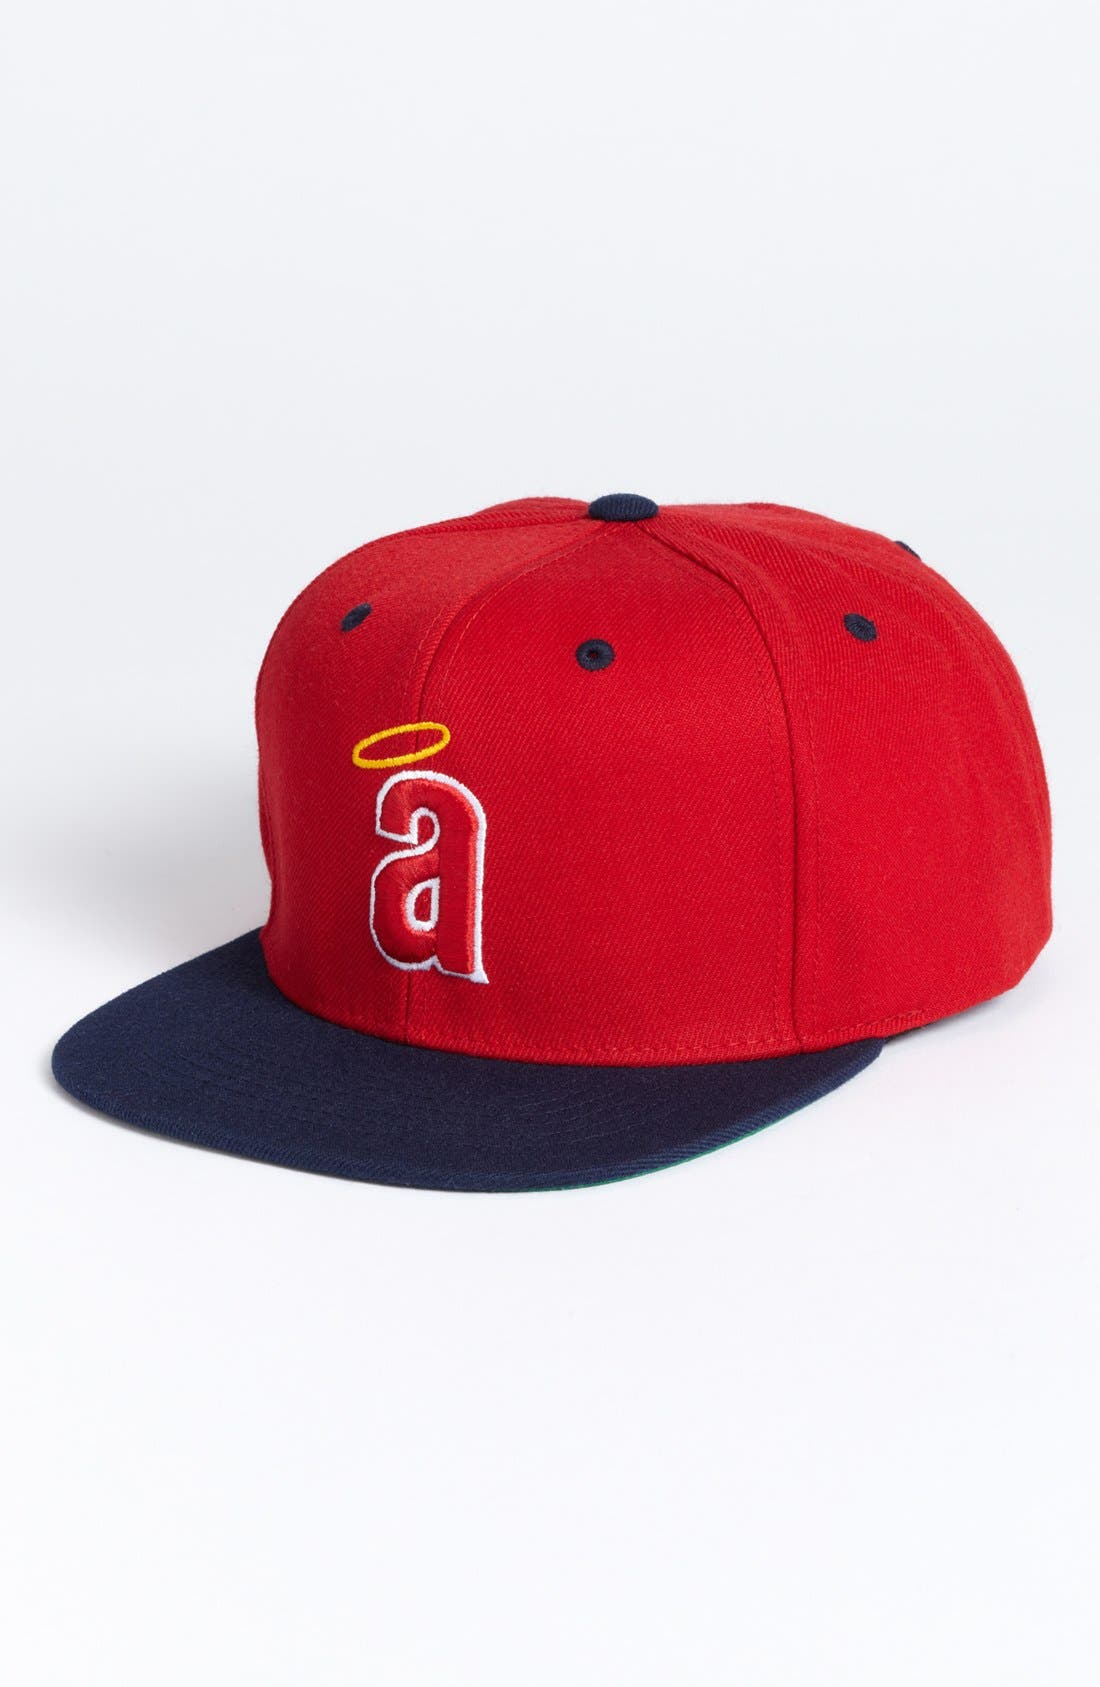 Main Image - American Needle 'Anaheim Angels - Back 2 Front' Snapback Baseball Cap